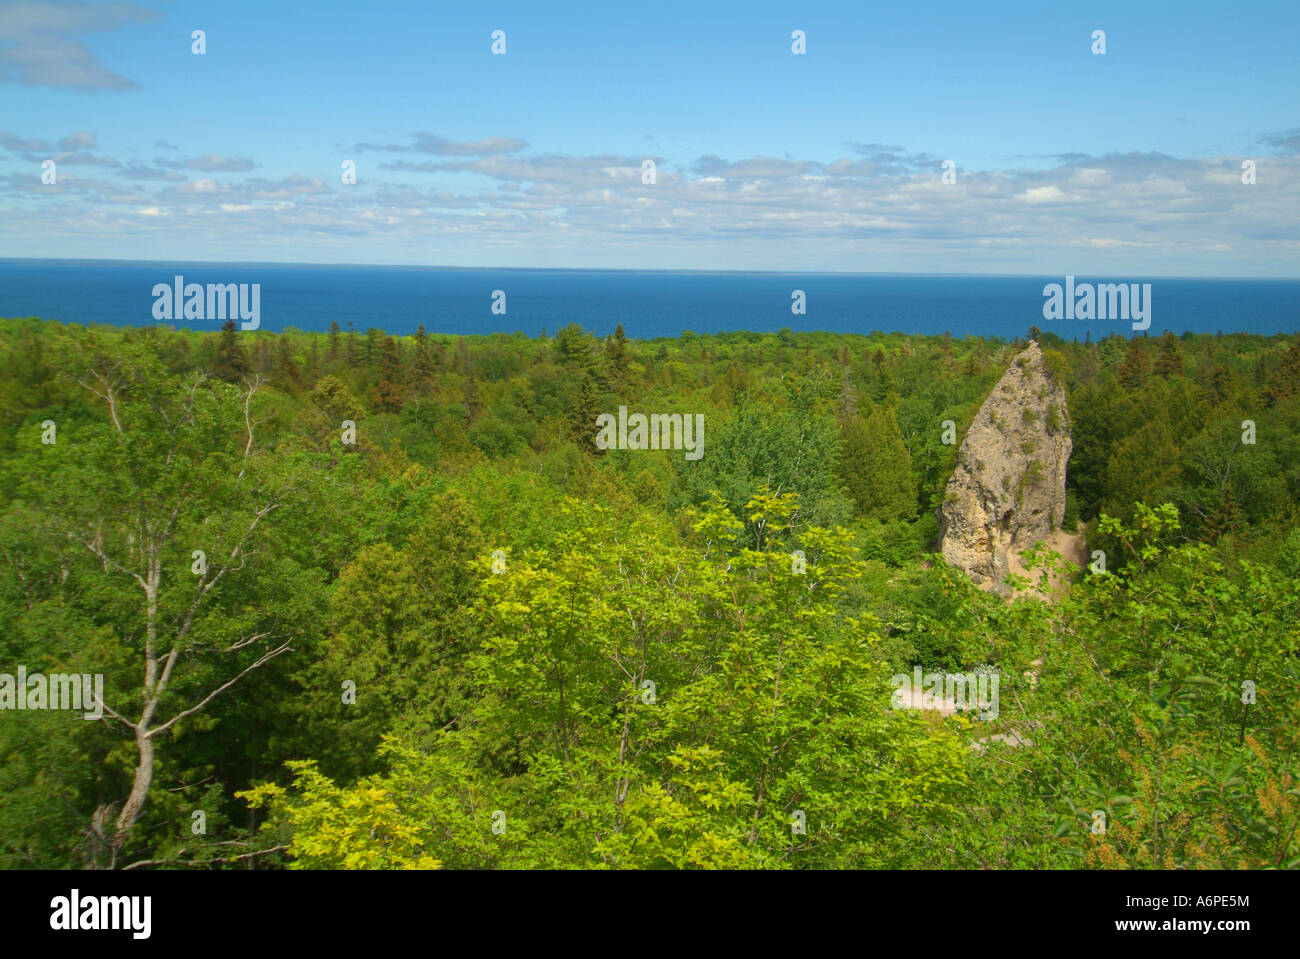 usa-michigan-lake-huron-mackinac-island-view-of-sugarload-rock-A6PE5M.jpg